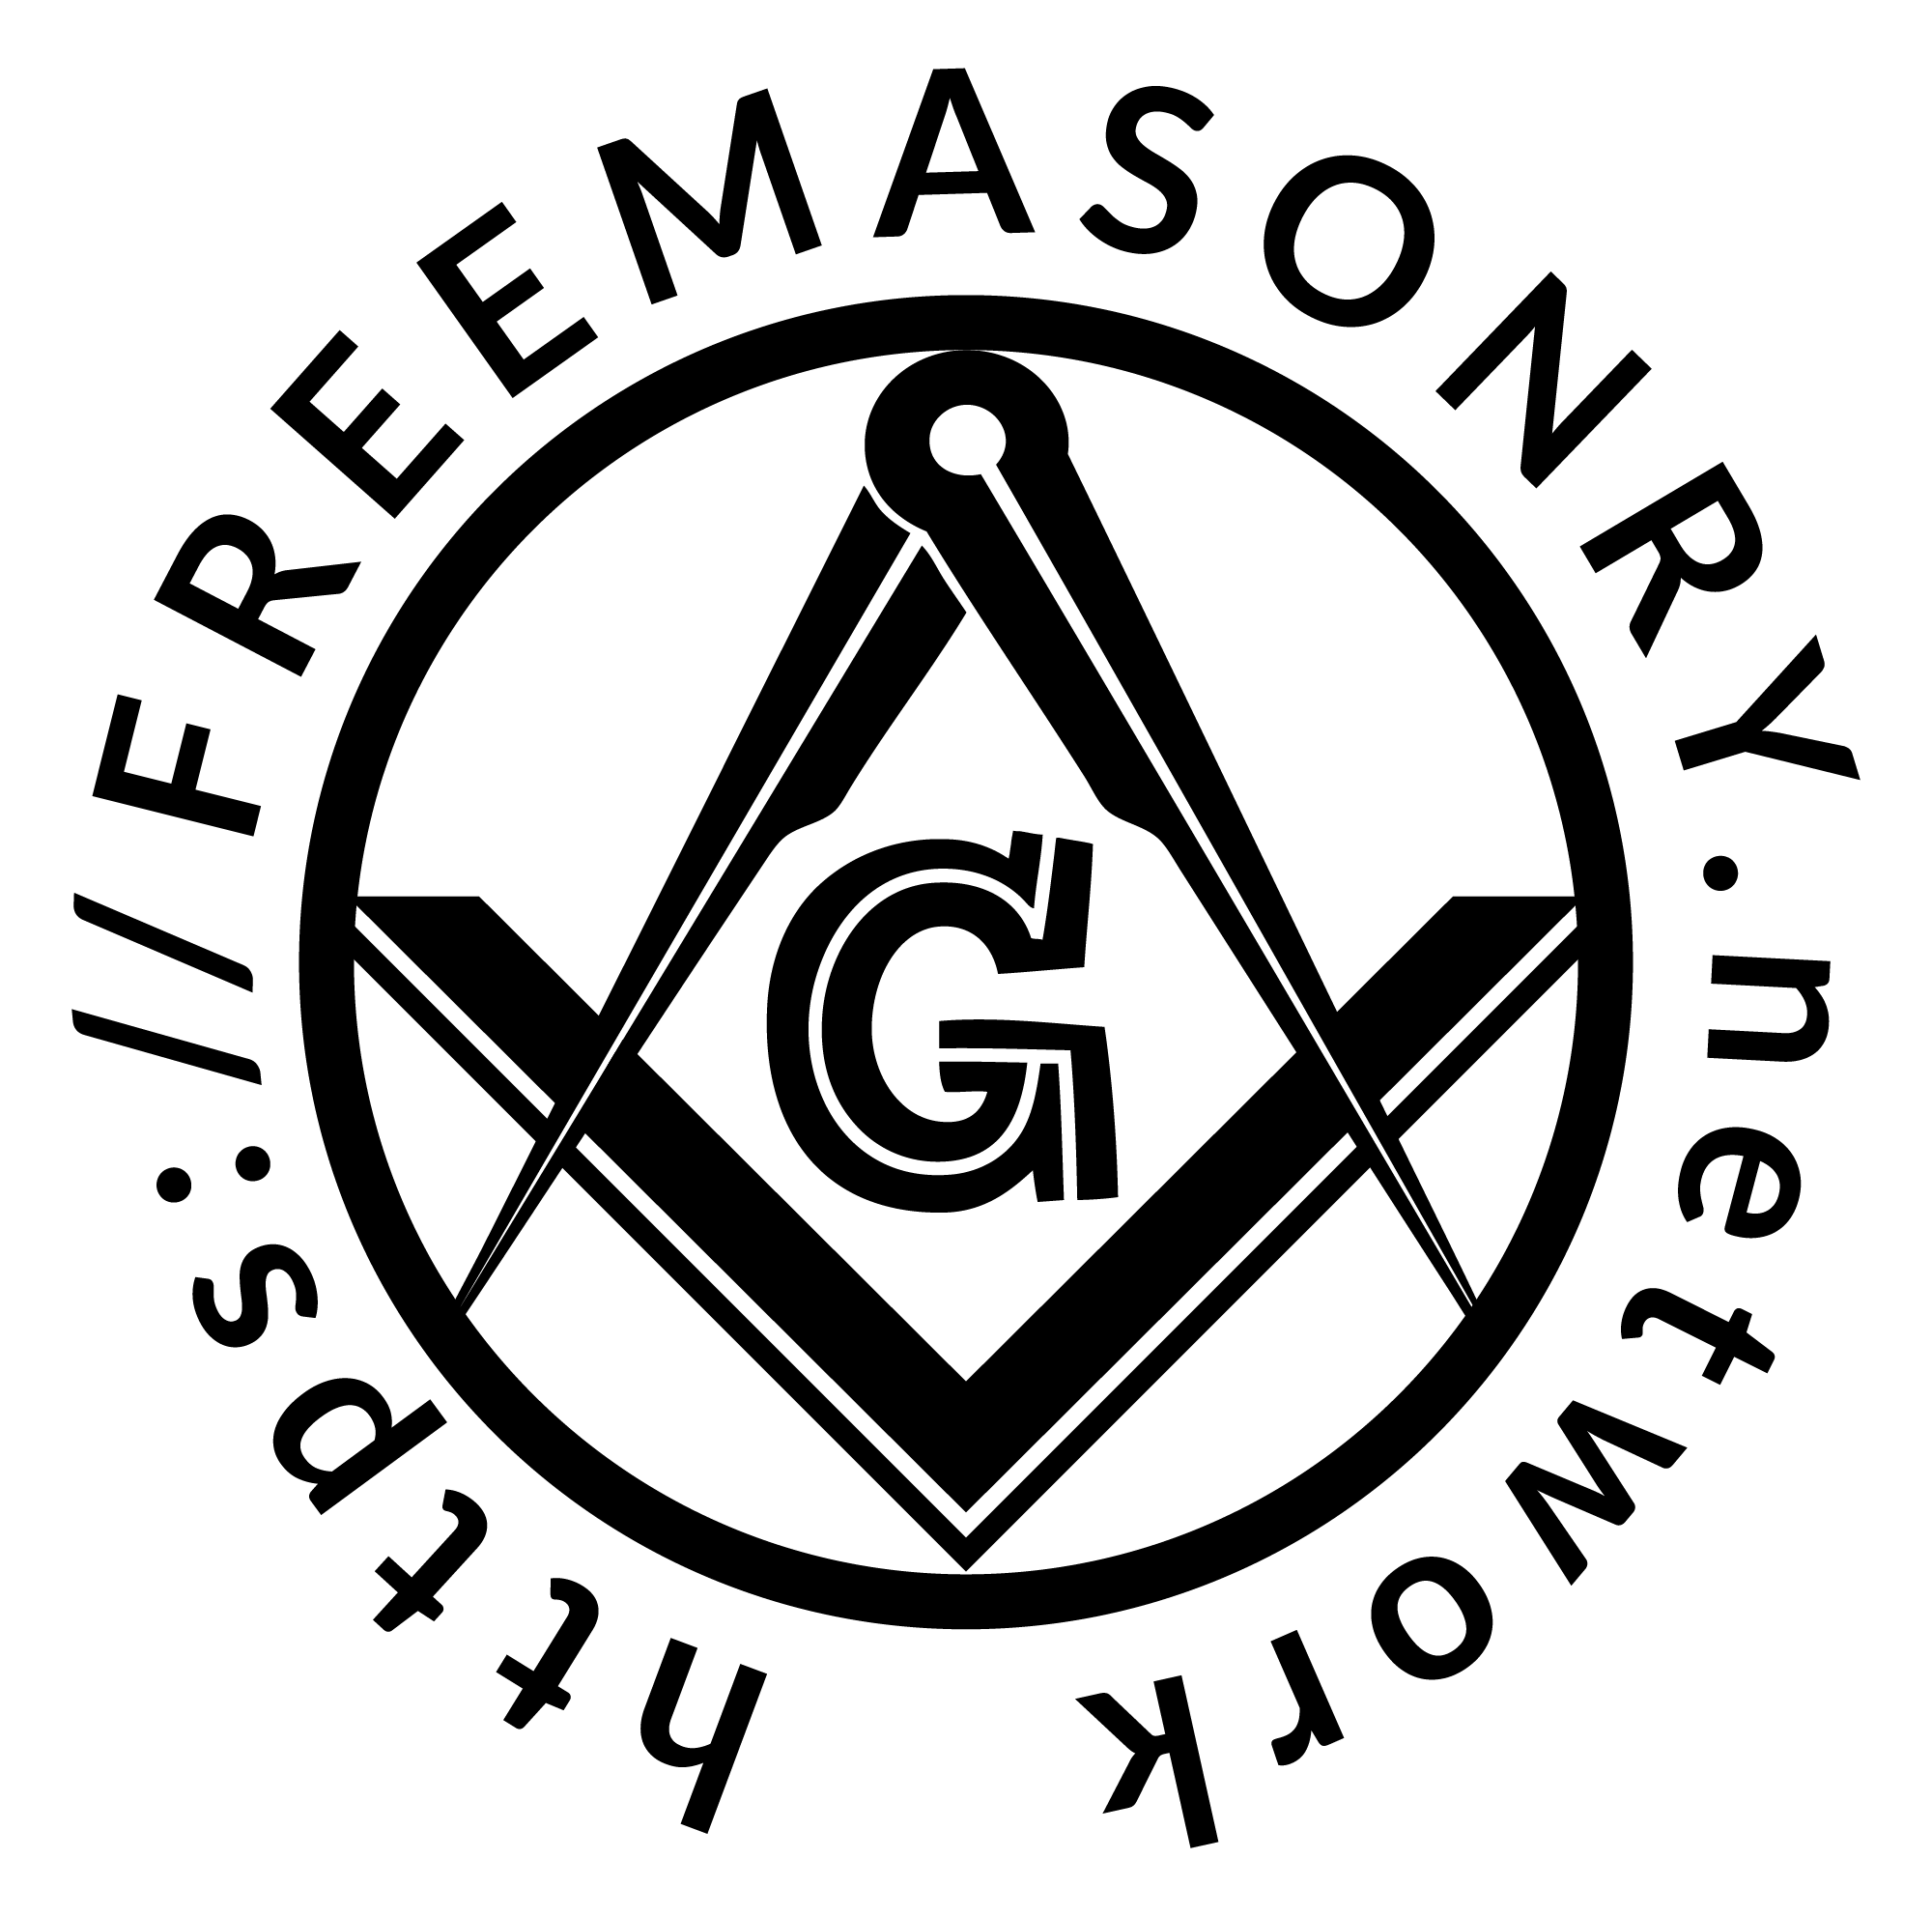 ARTICLES ABOUT FREEMASONRY